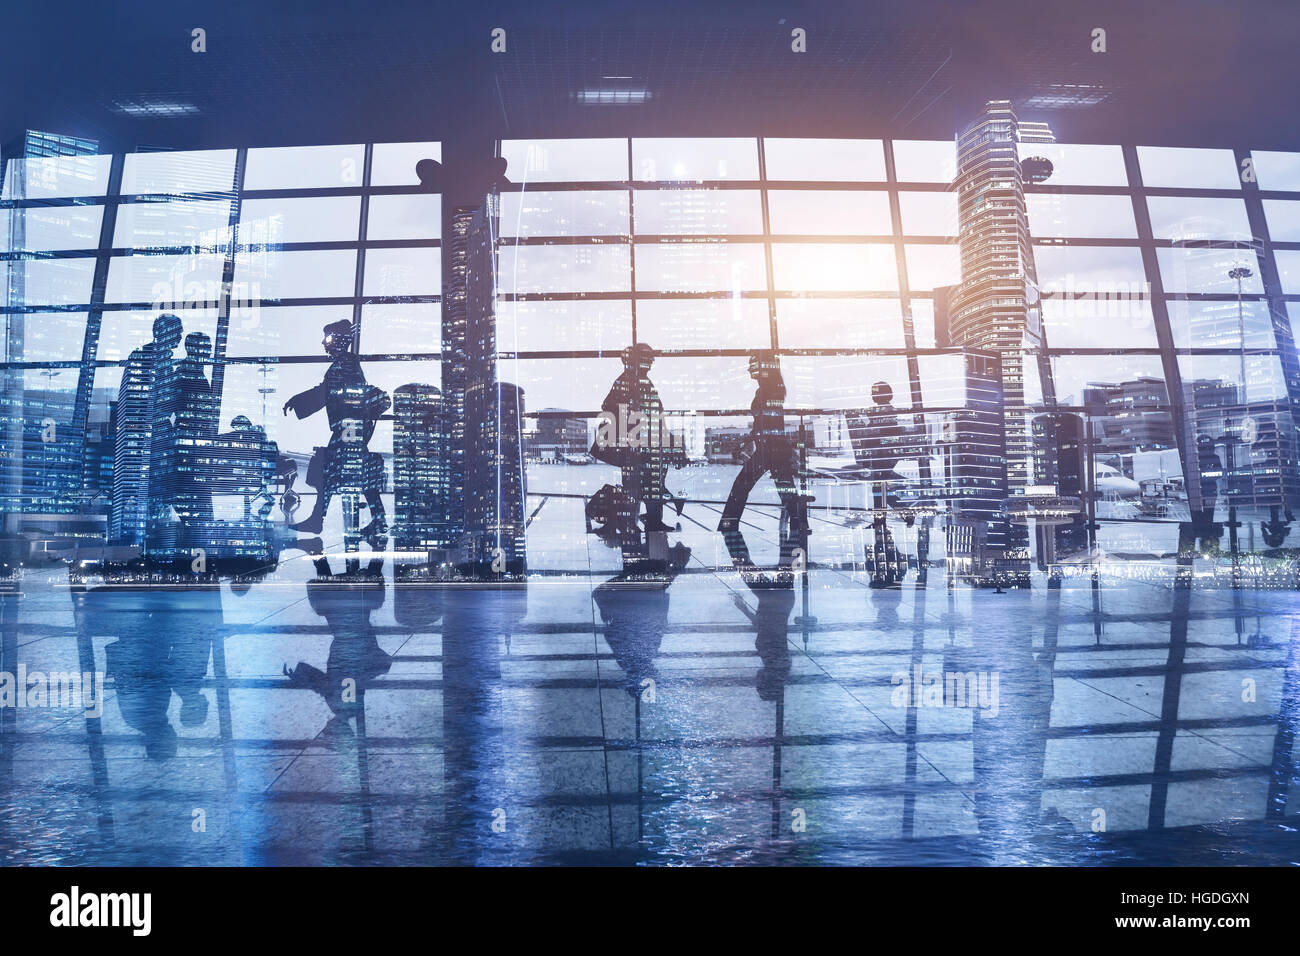 Silhouettes of commuters walking at airport, business travel concept, abstract background with people, double exposure - Stock Image